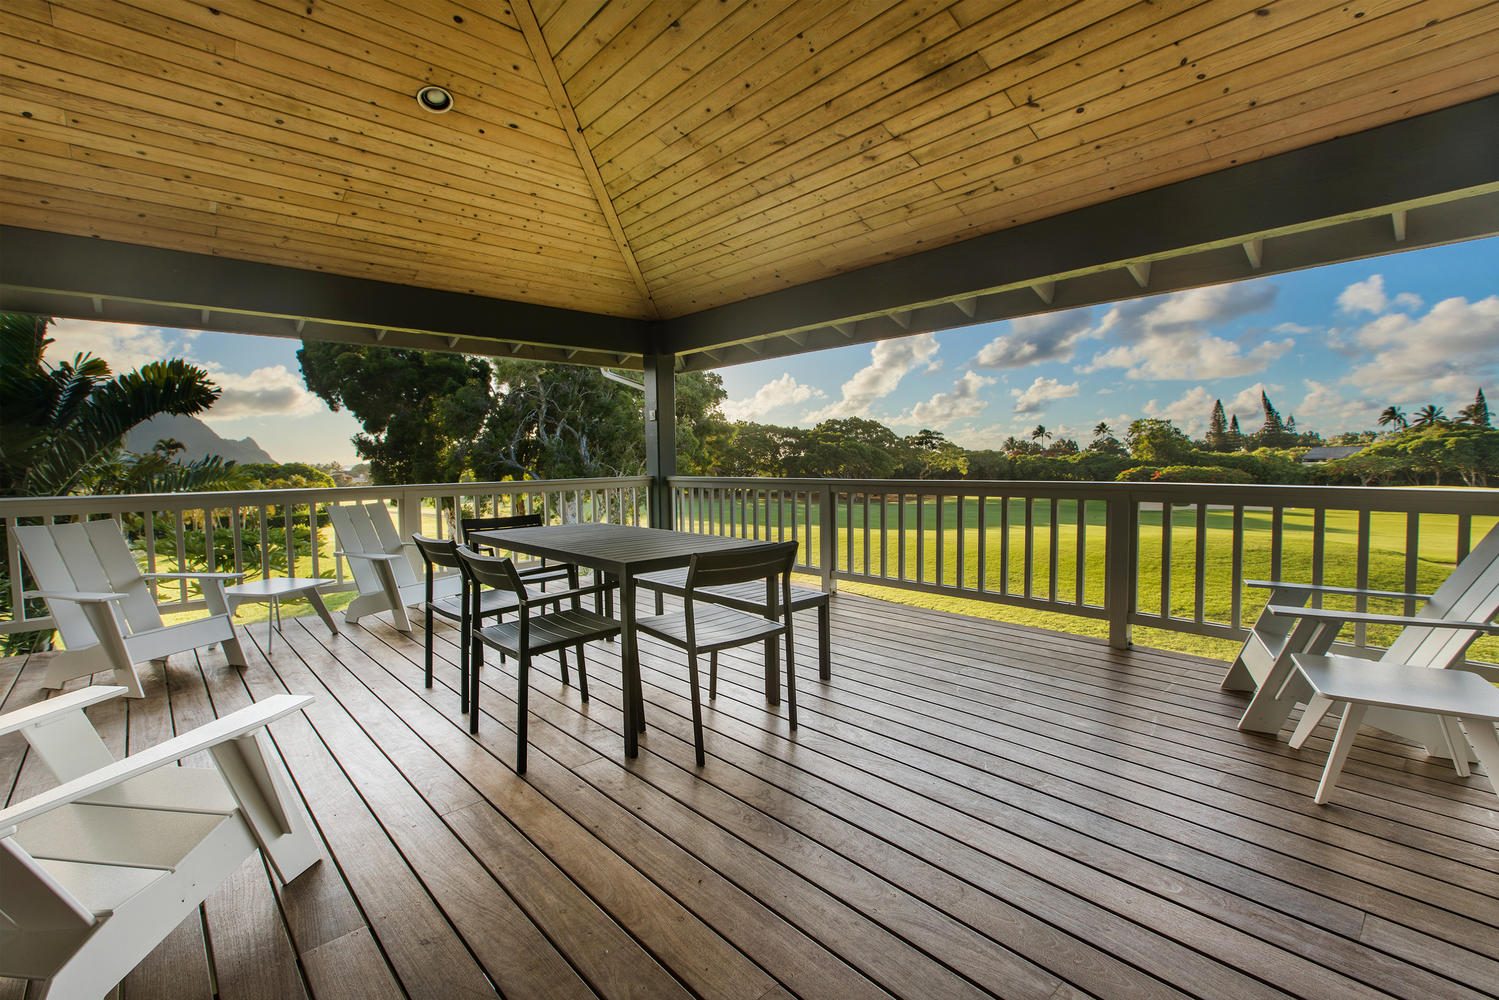 Ipe wood deck with views